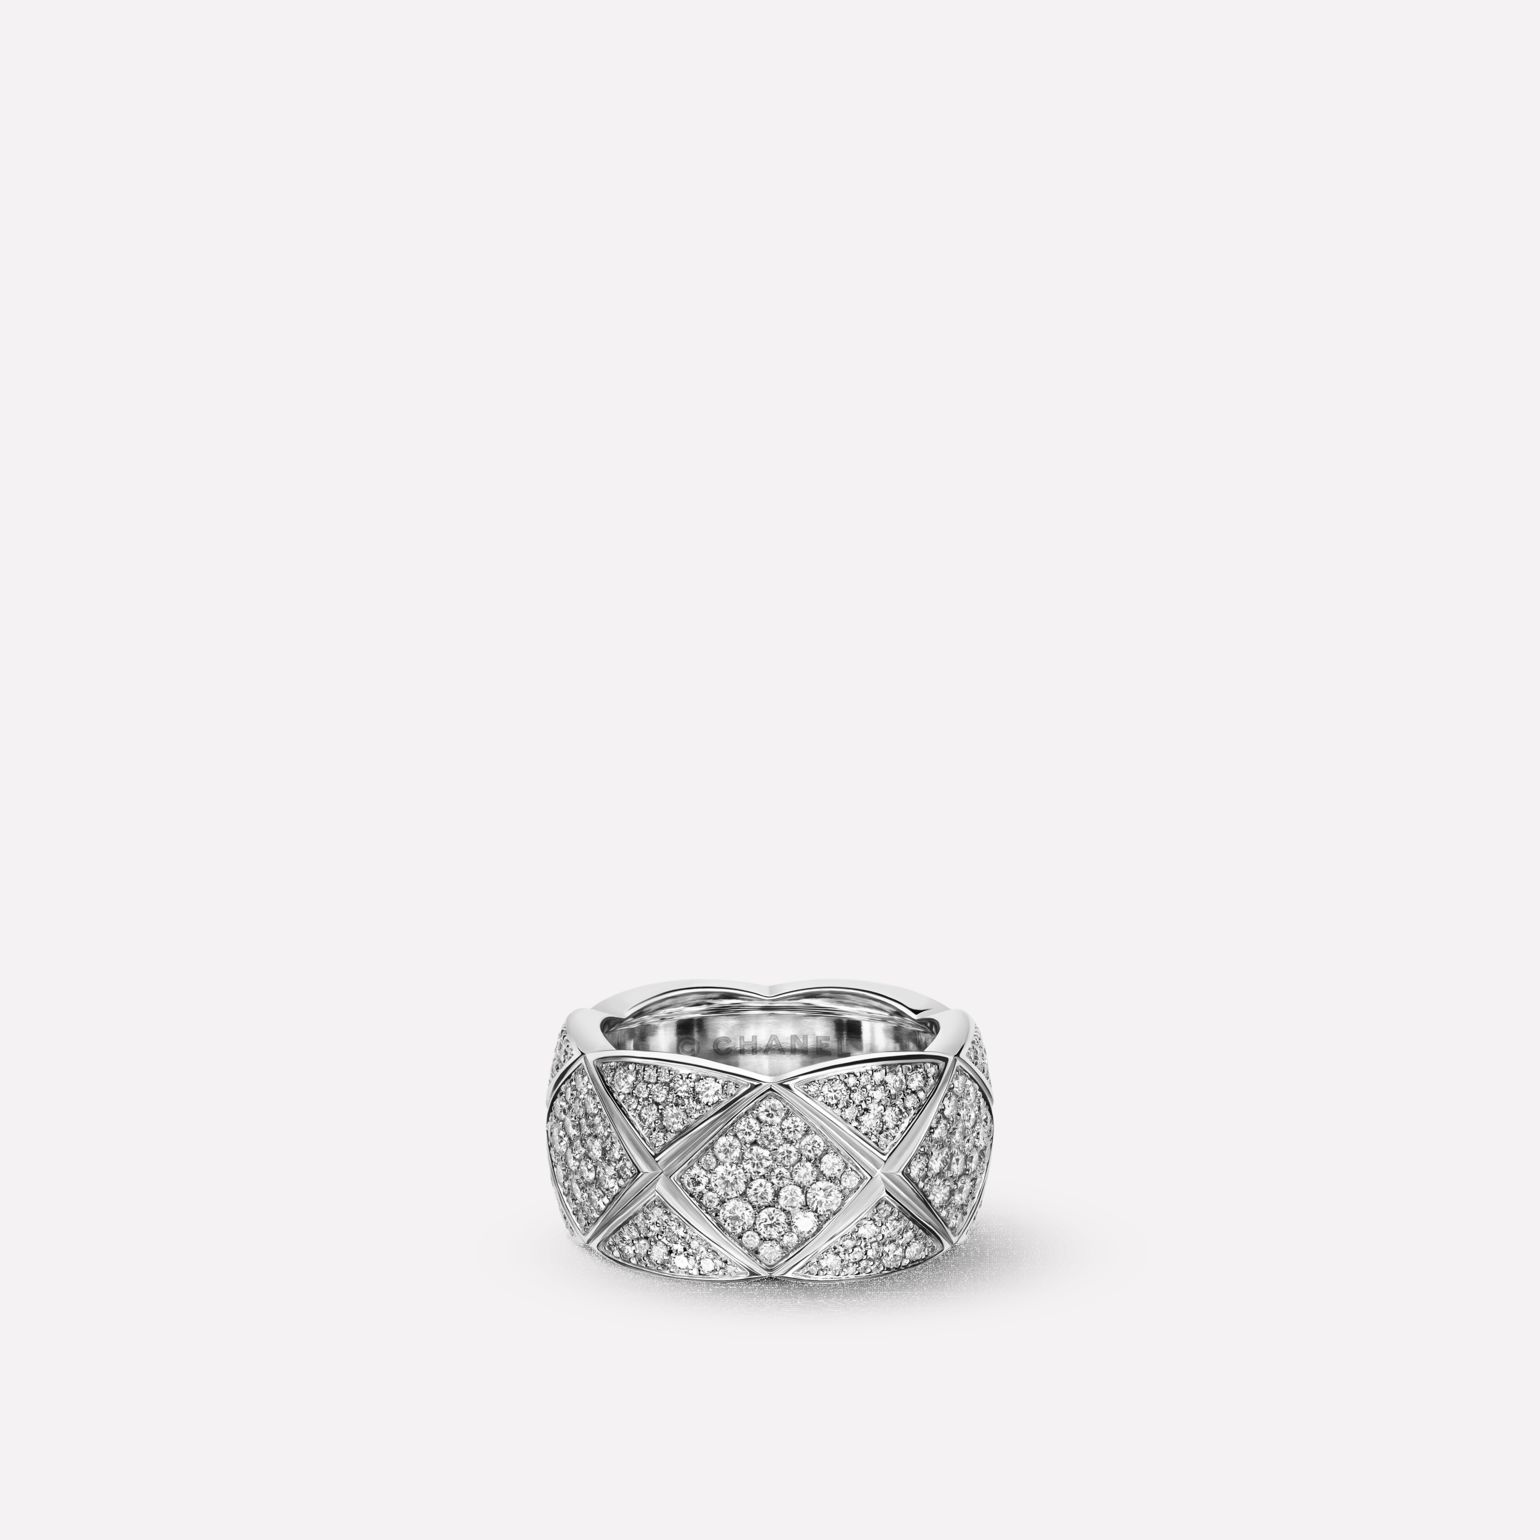 Bague Coco Crush Motif matelassé, grand modèle, or blanc 18 carats, diamants